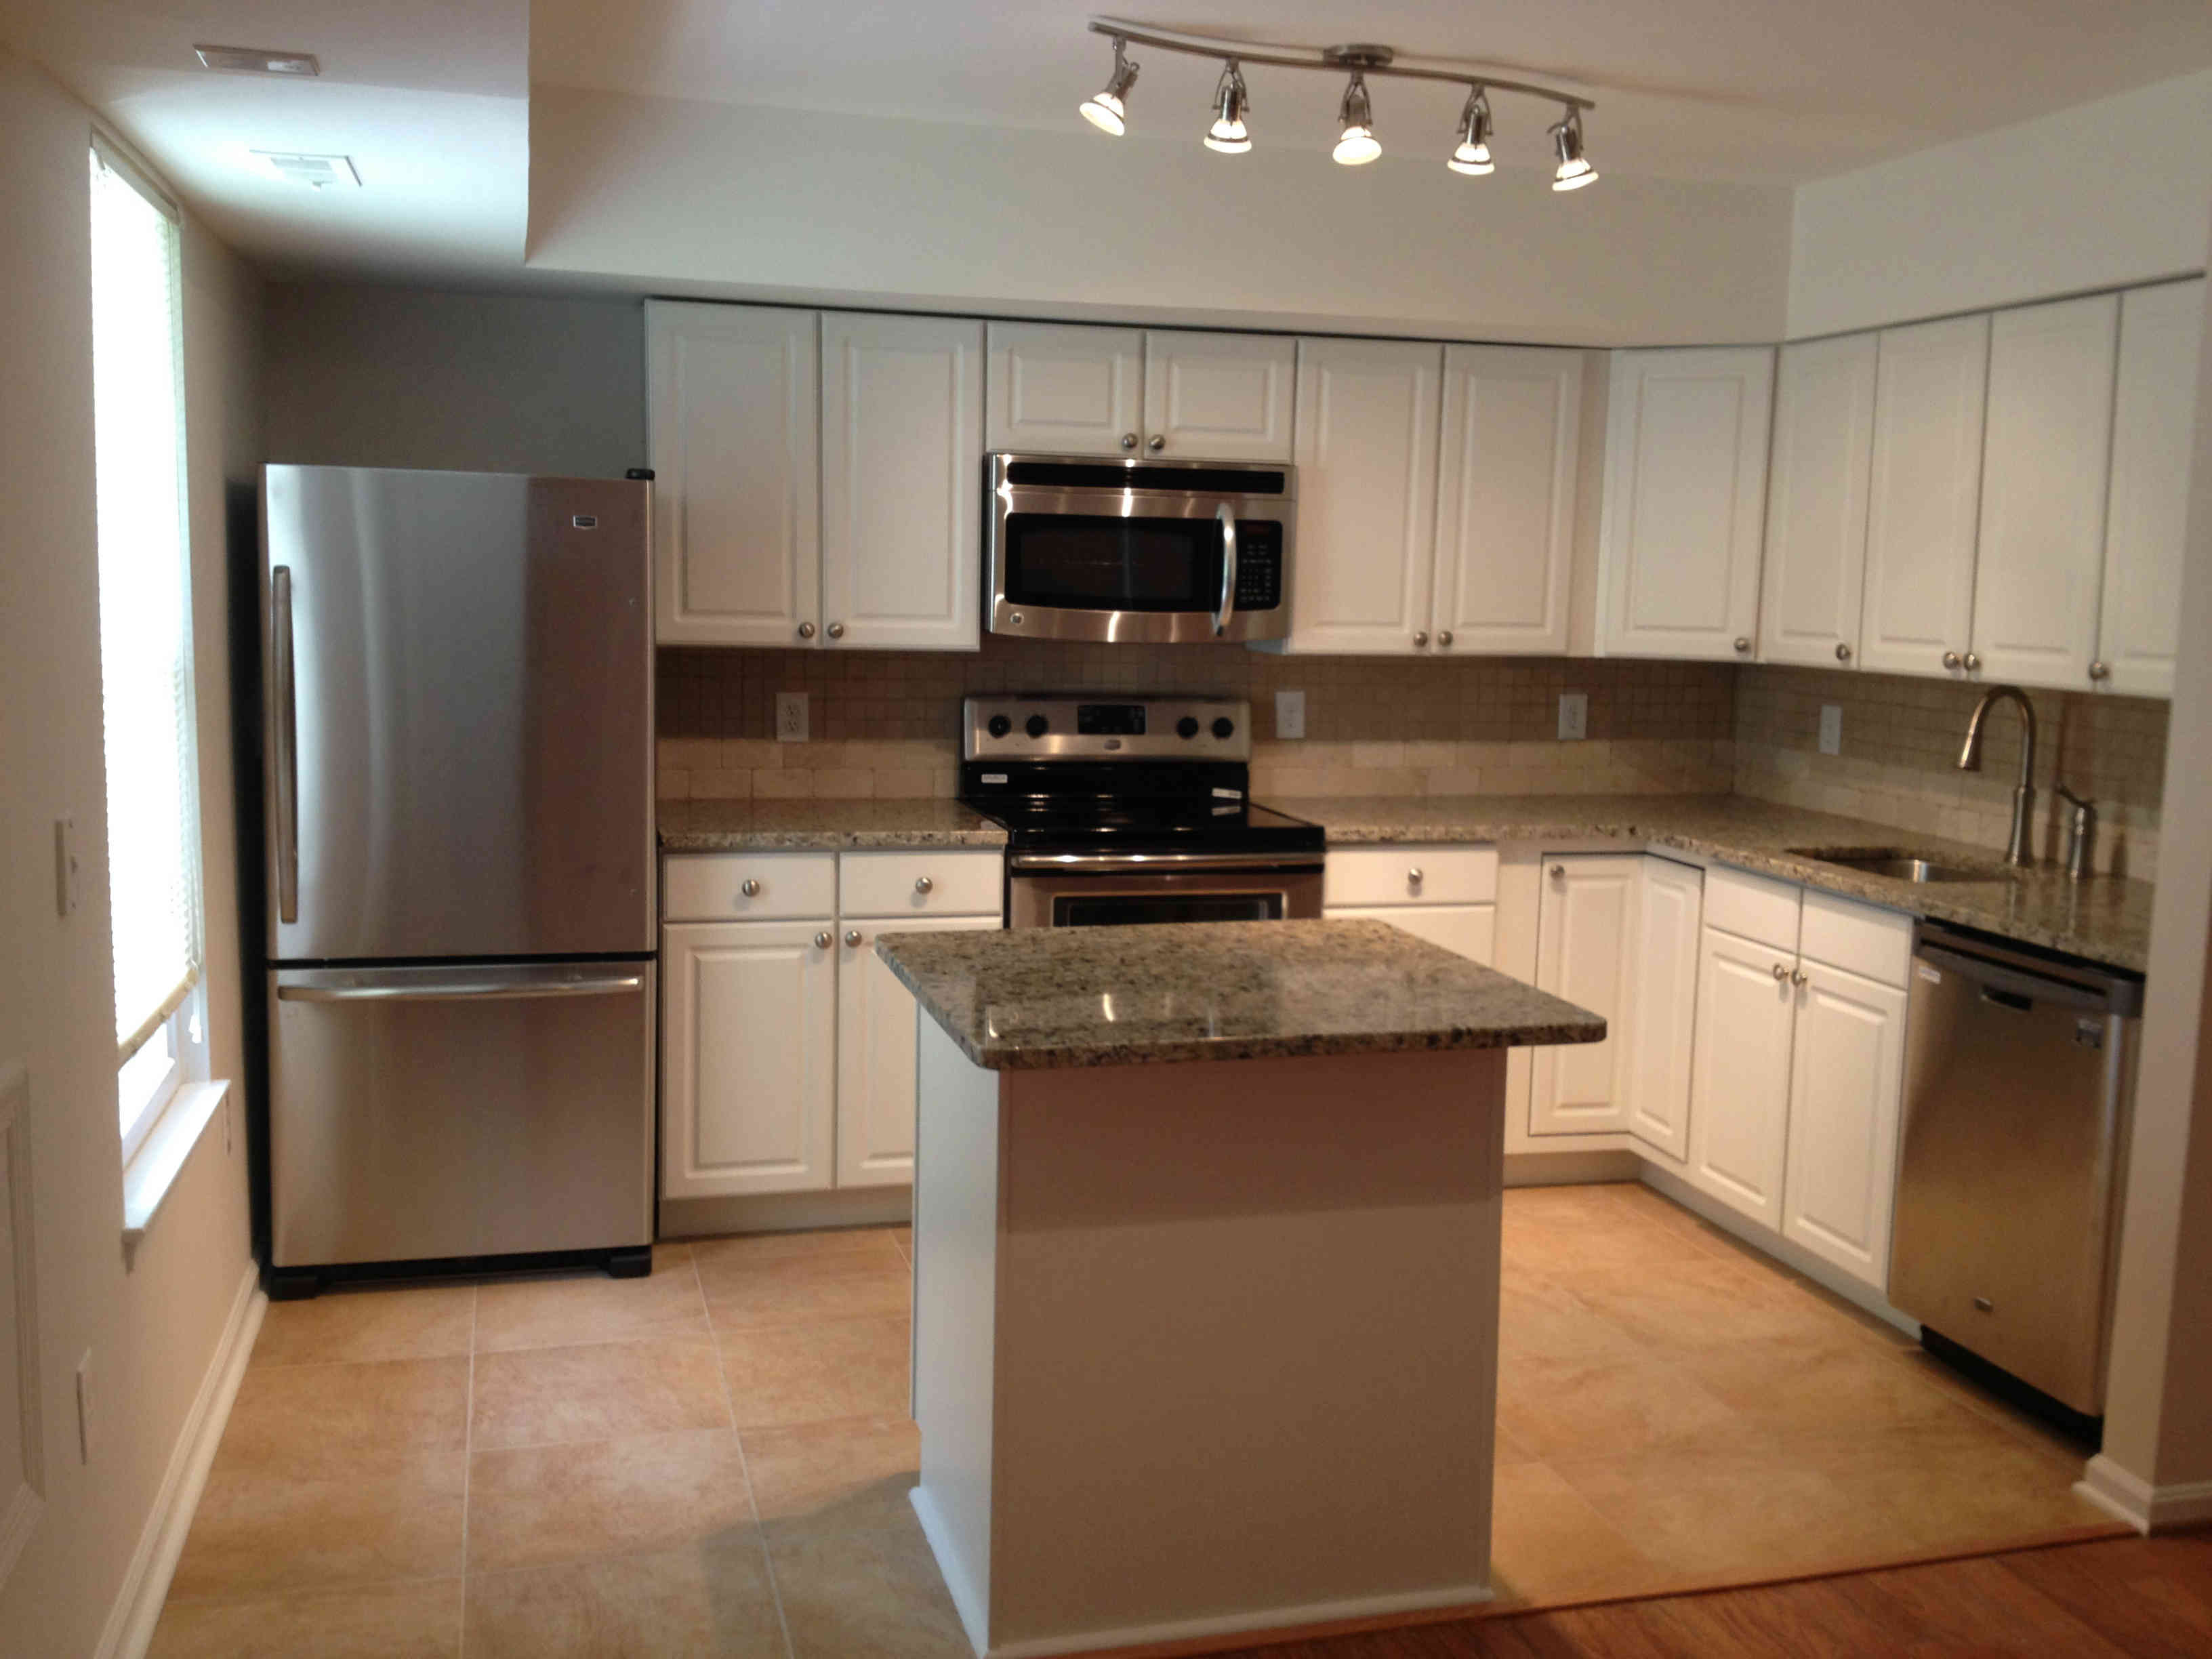 Kitchen Remodeling Washington Dc Fair Kitchen Remodeling In Washington Dc & Bethesda Md  Melness . Decorating Design